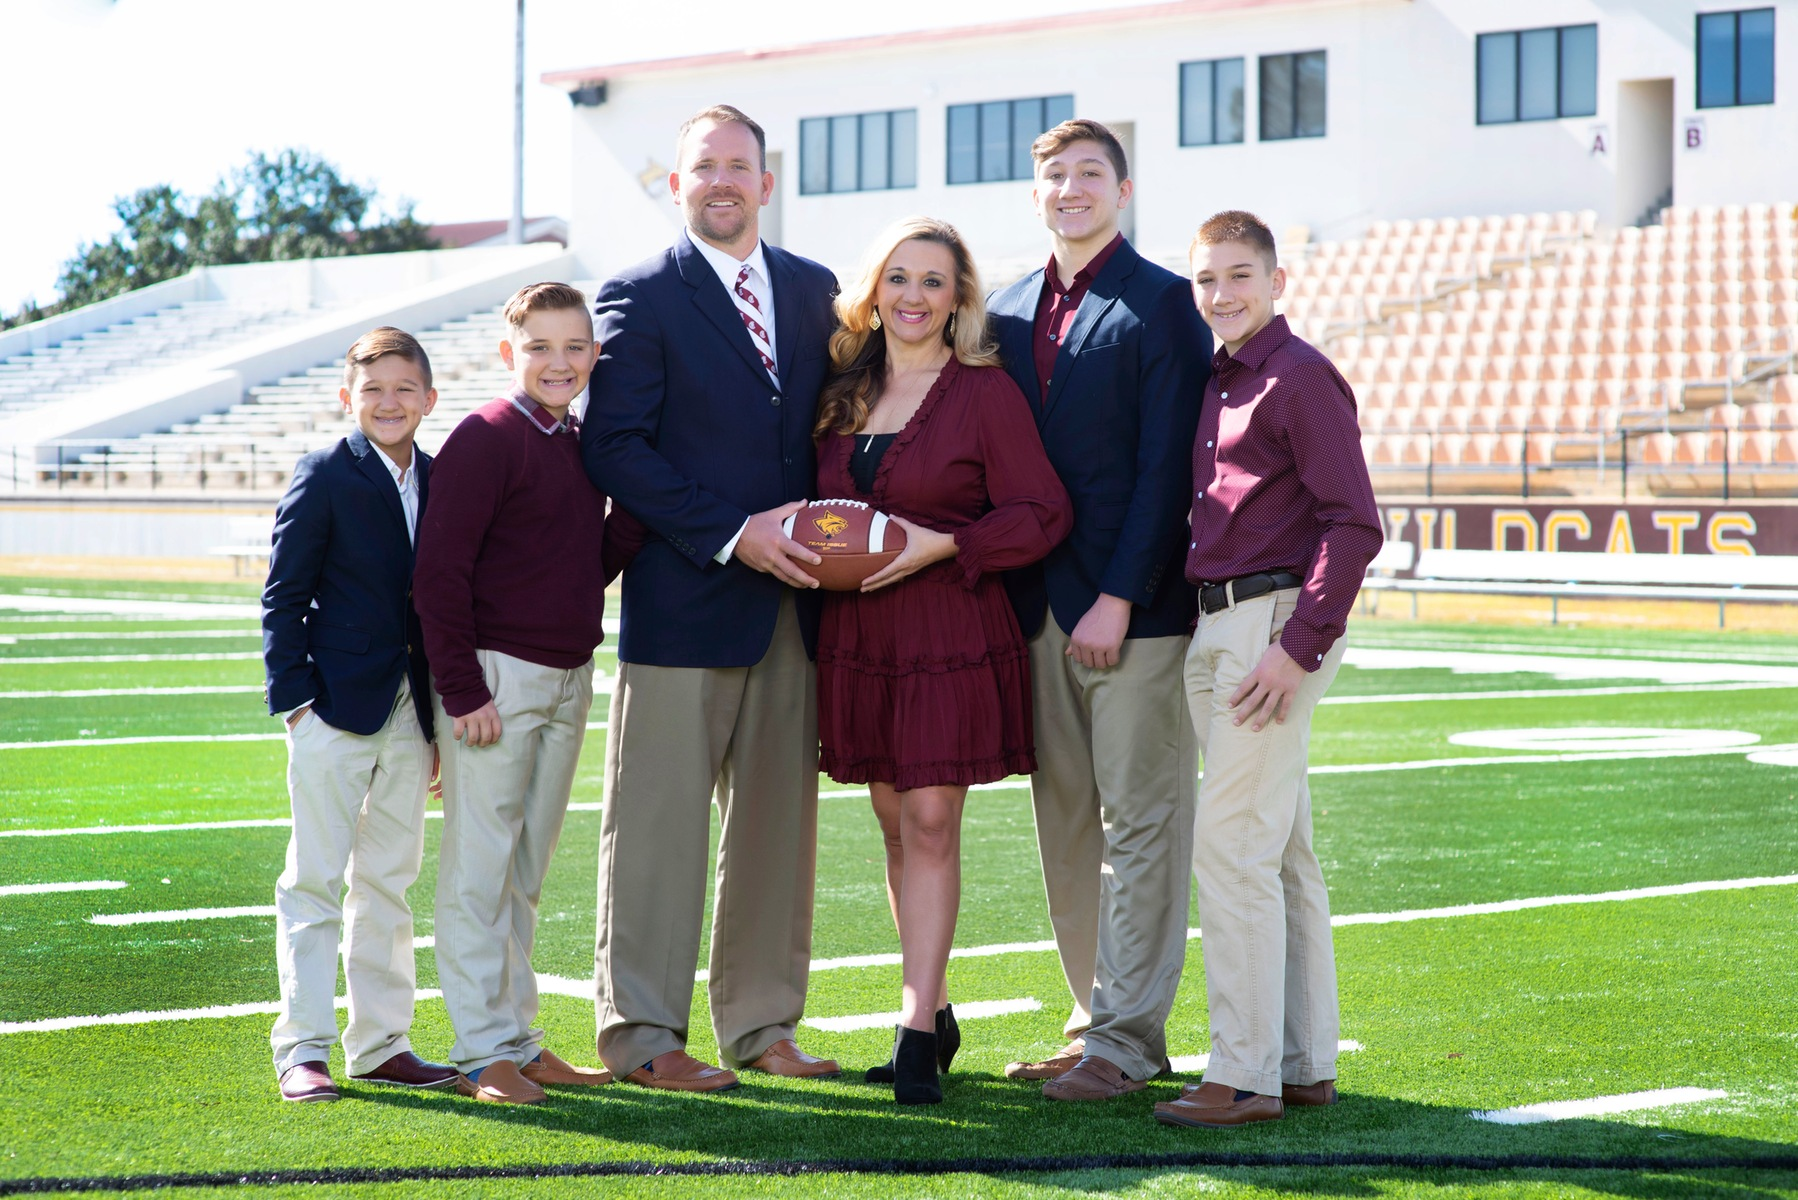 Pearl River announced on Thursday, Nov. 21, 2019, the hire of Seth Smith as the school's next football coach. (KRISTI HARRIS/PRCC ATHLETICS)